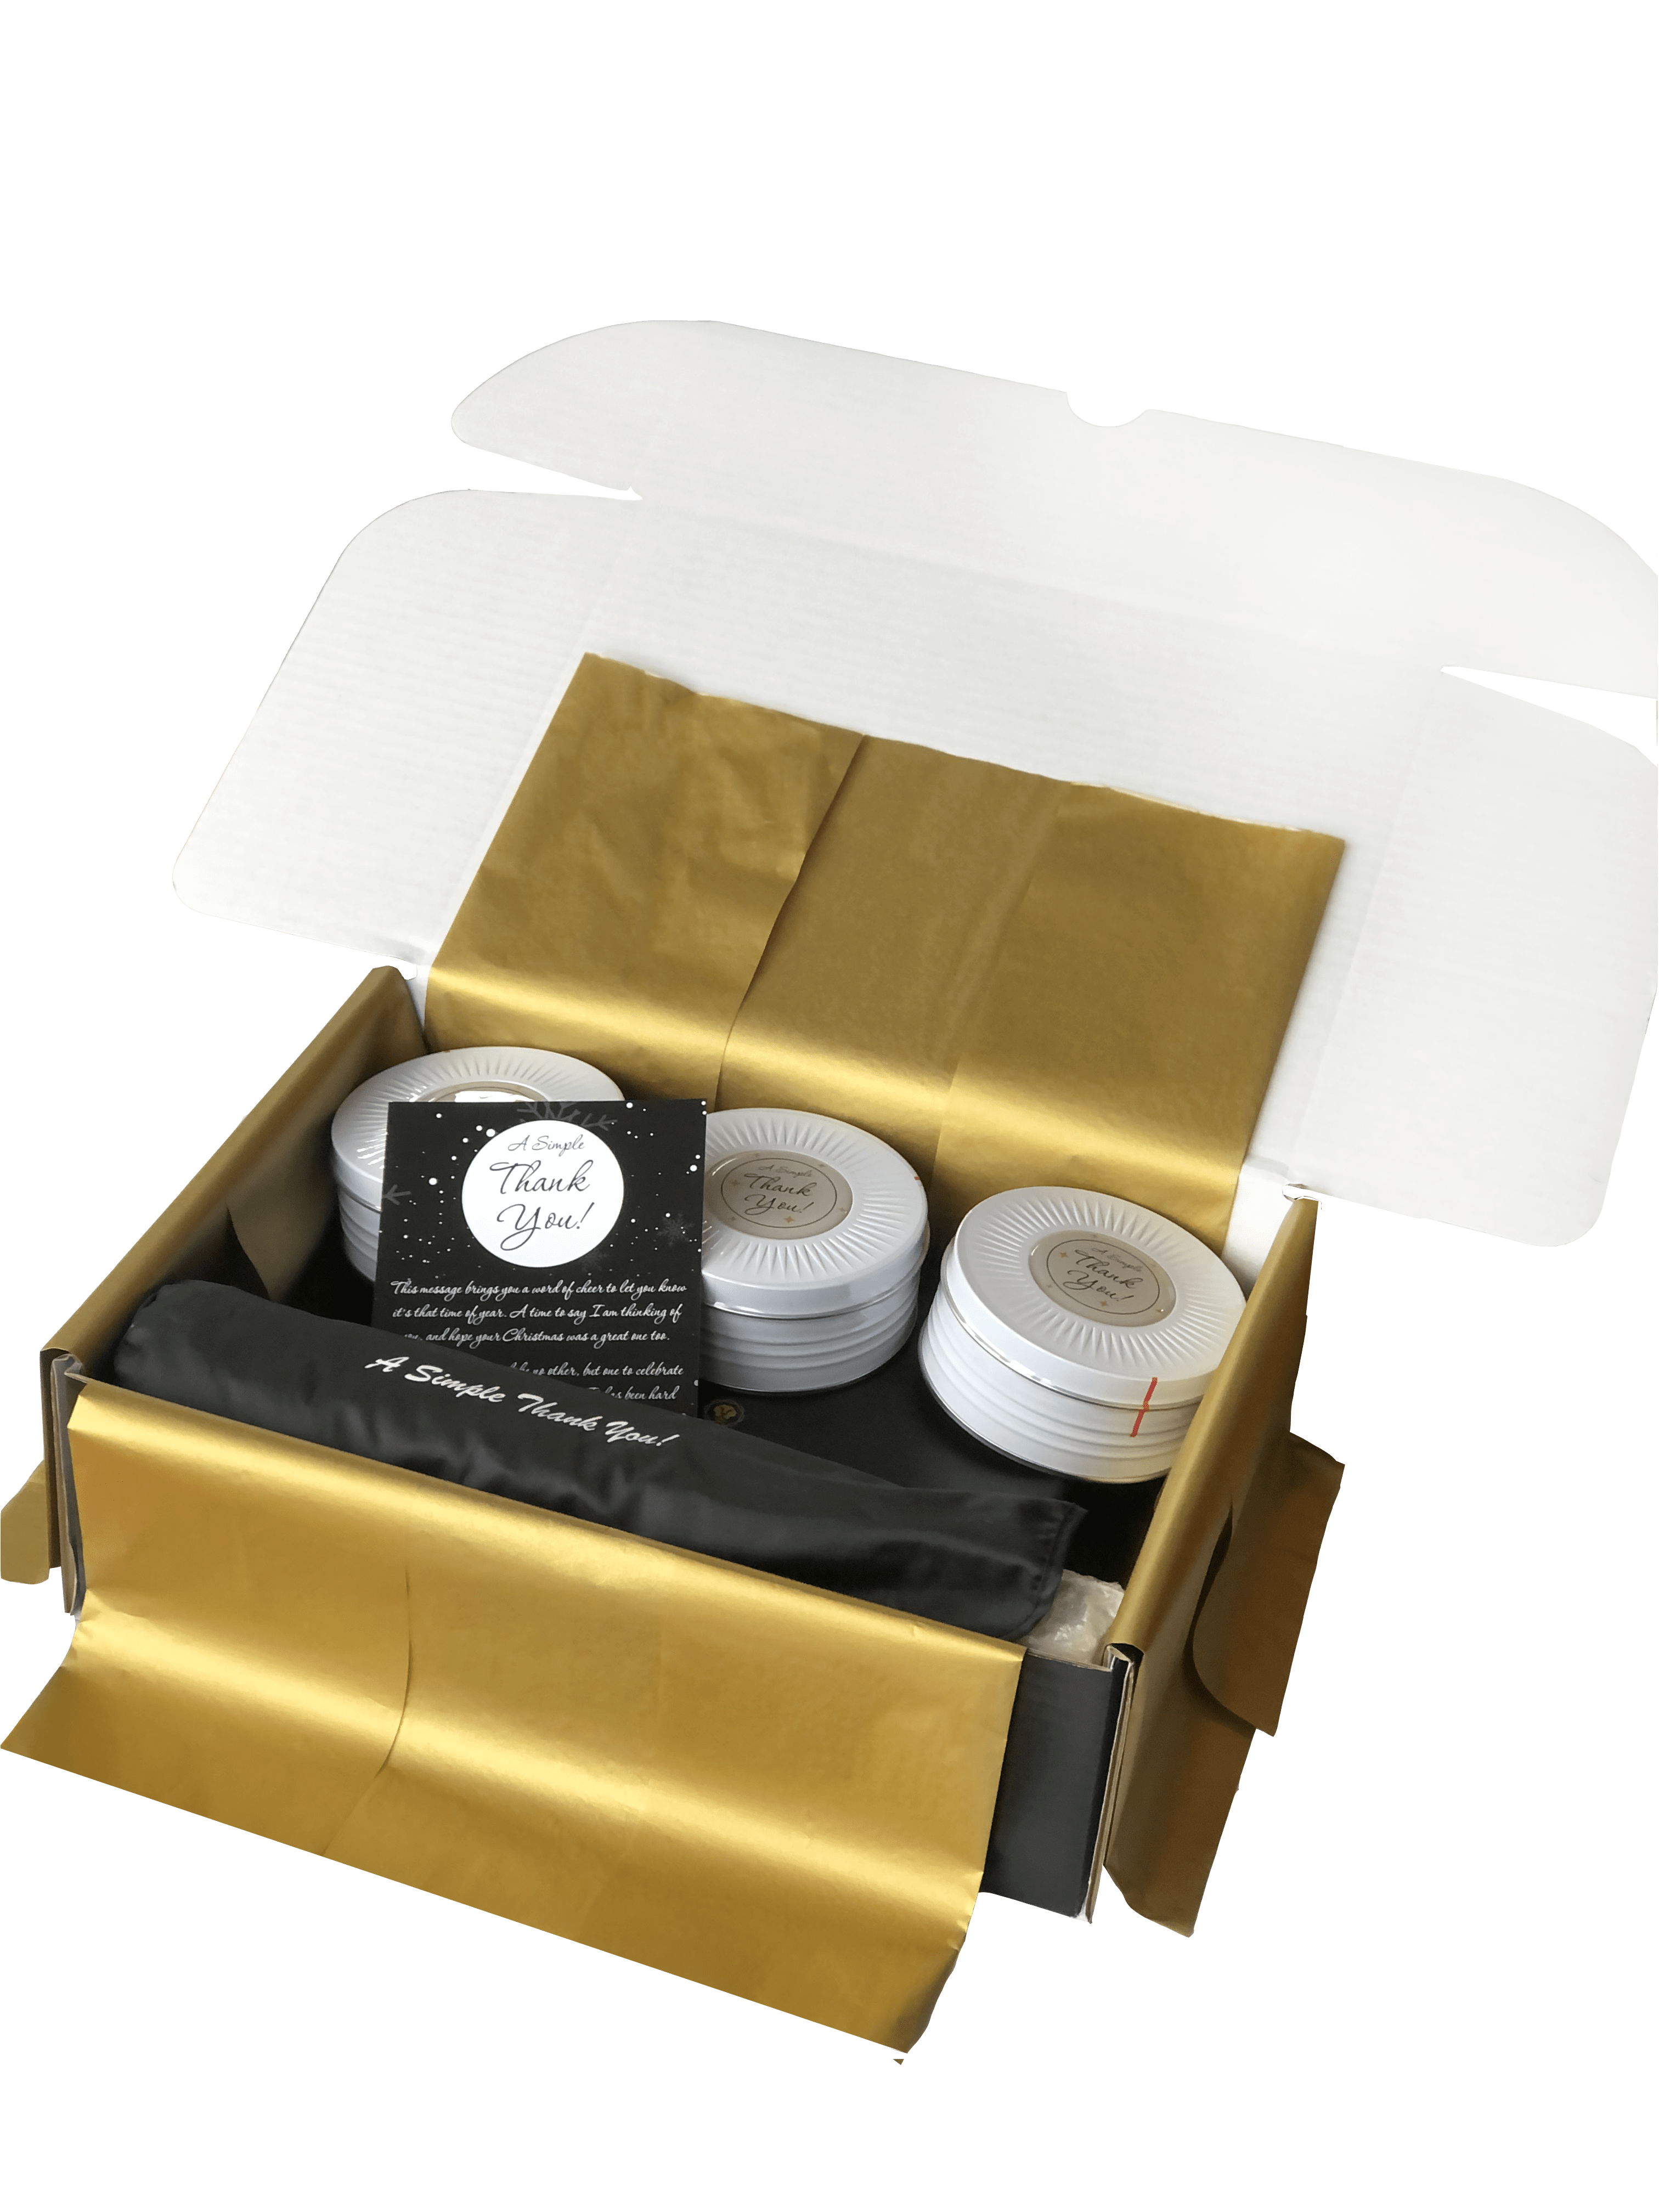 Work from home staff gifts